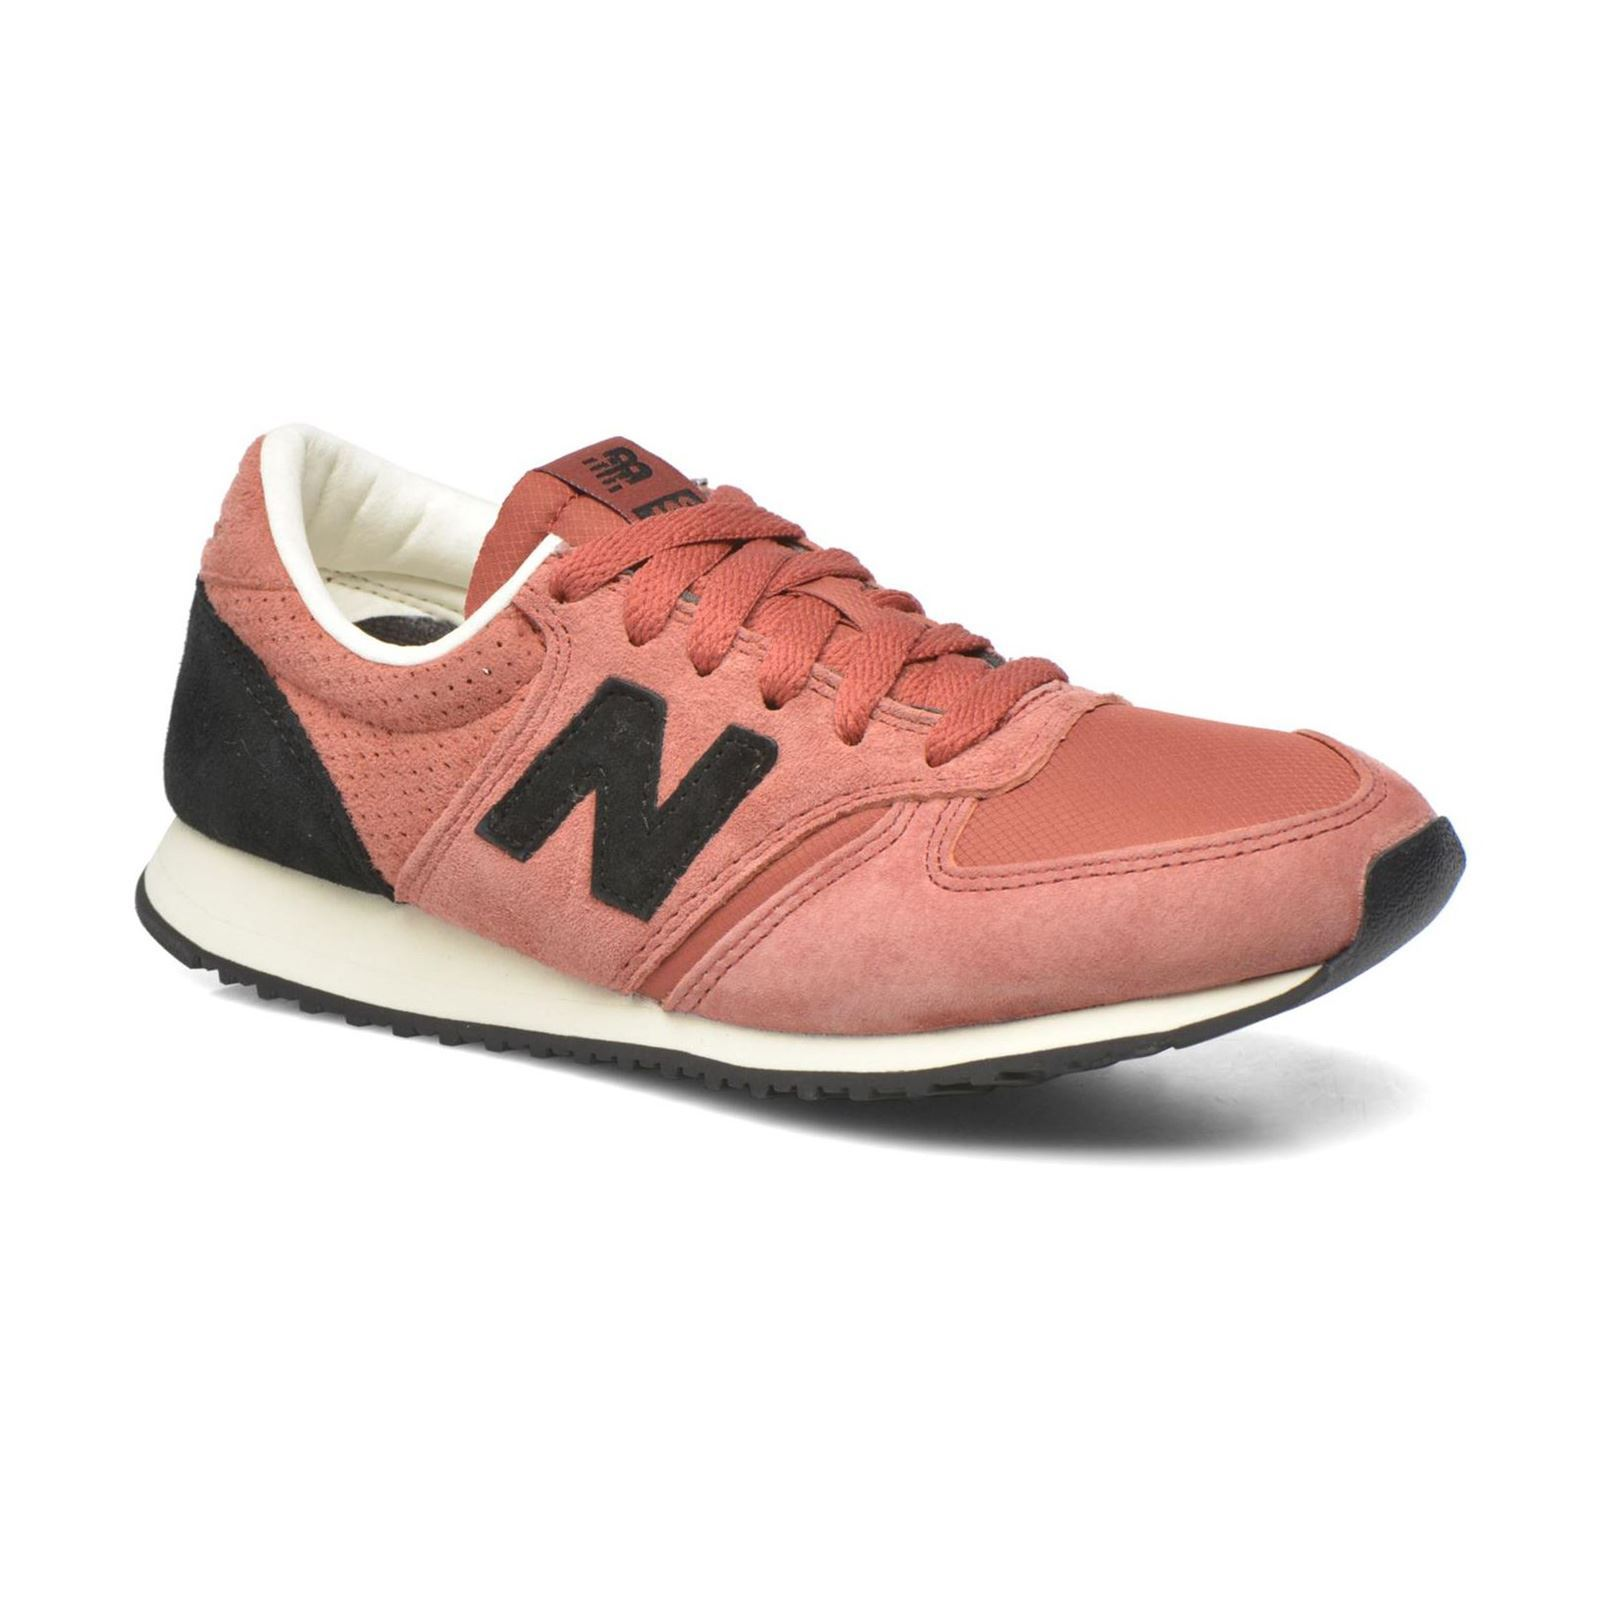 new balance turnschuhe sneakers rosa brandalley. Black Bedroom Furniture Sets. Home Design Ideas